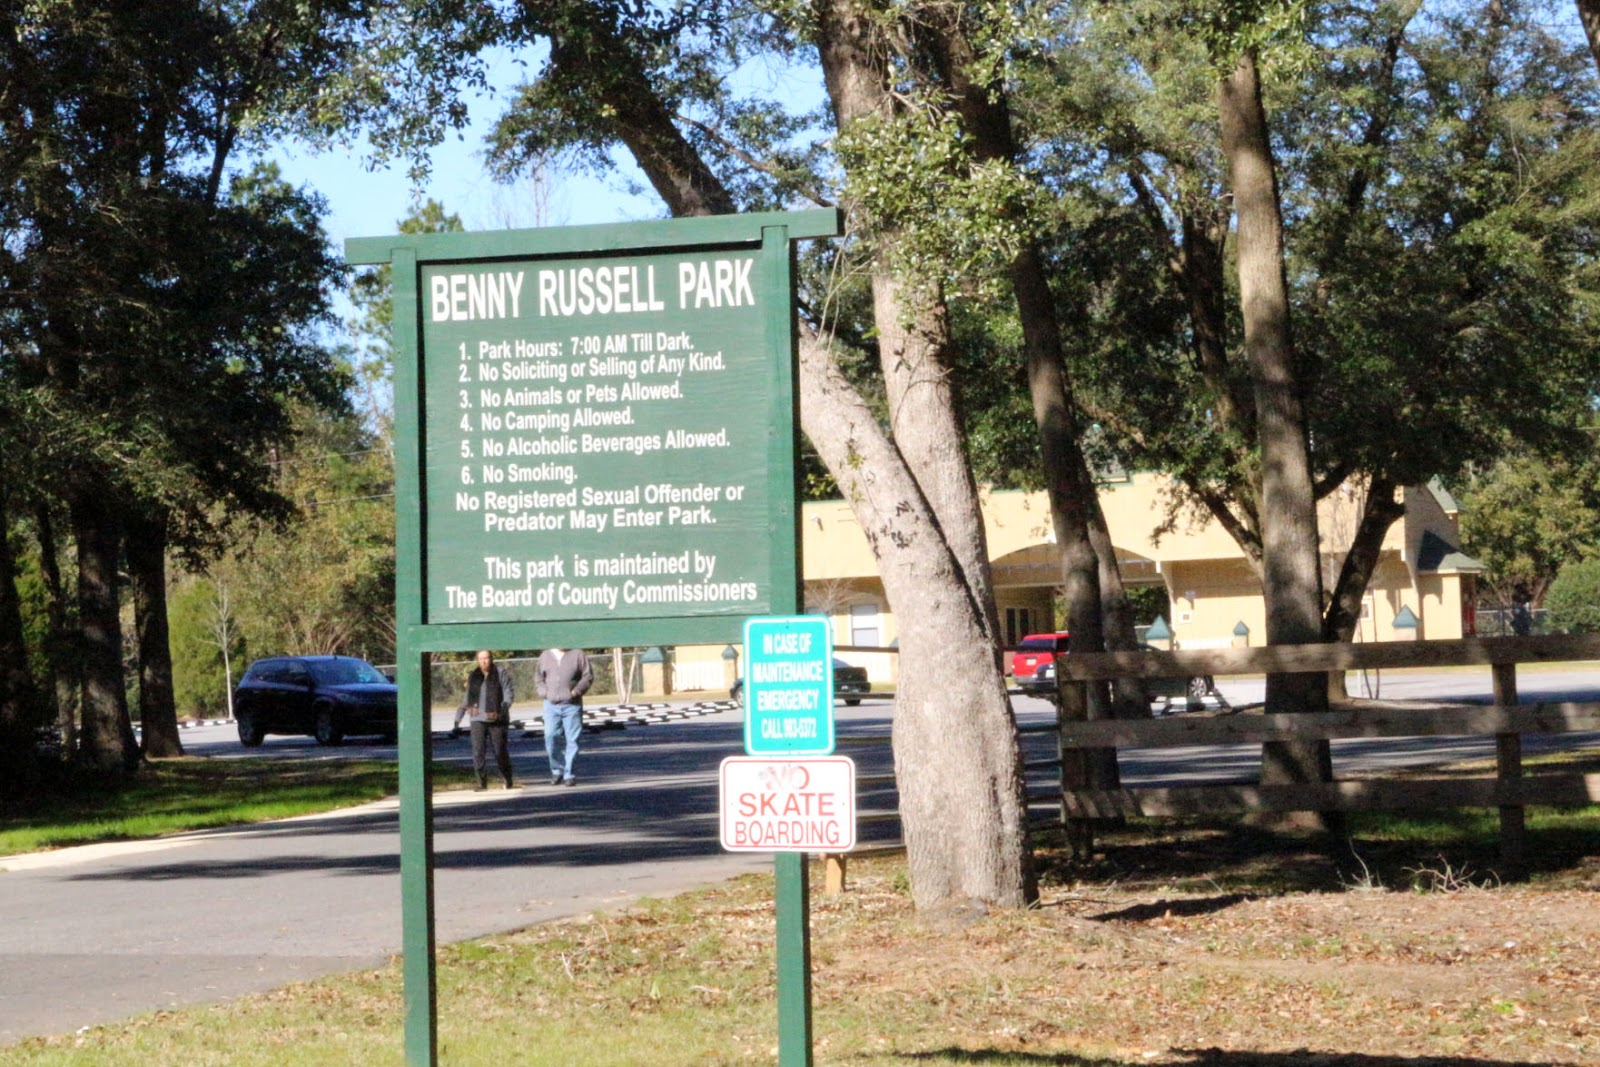 Benny Russell Park~ Pace, FL 32571 in Santa Rosa County